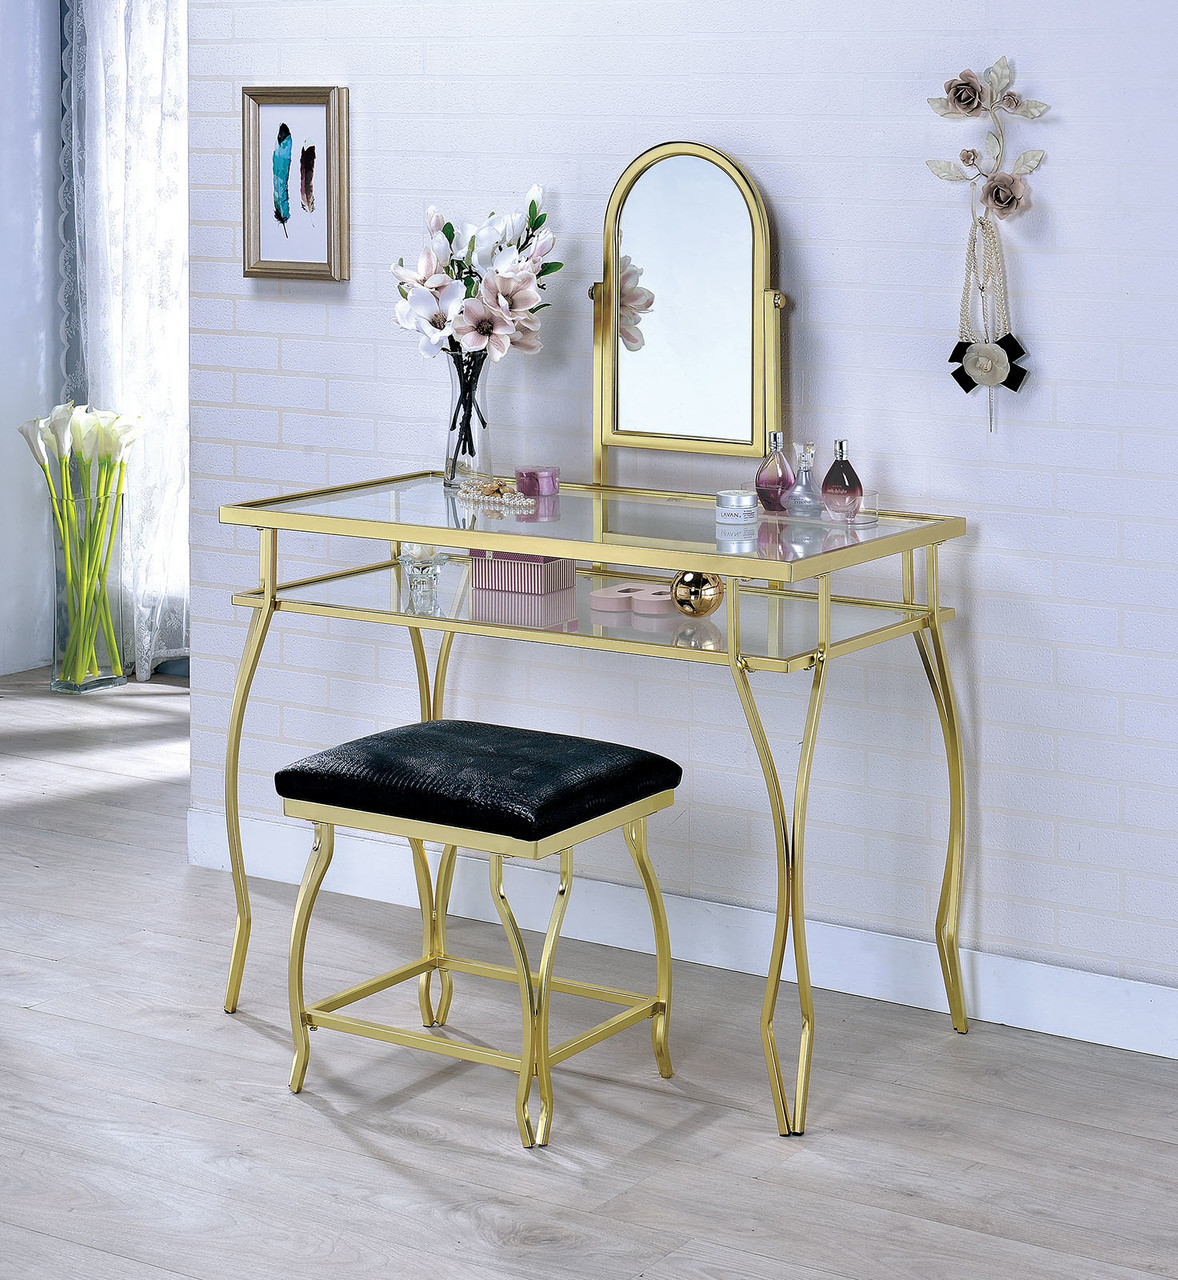 Emma Metal Glass Makeup Desk With Bench | Champagne Finish ...